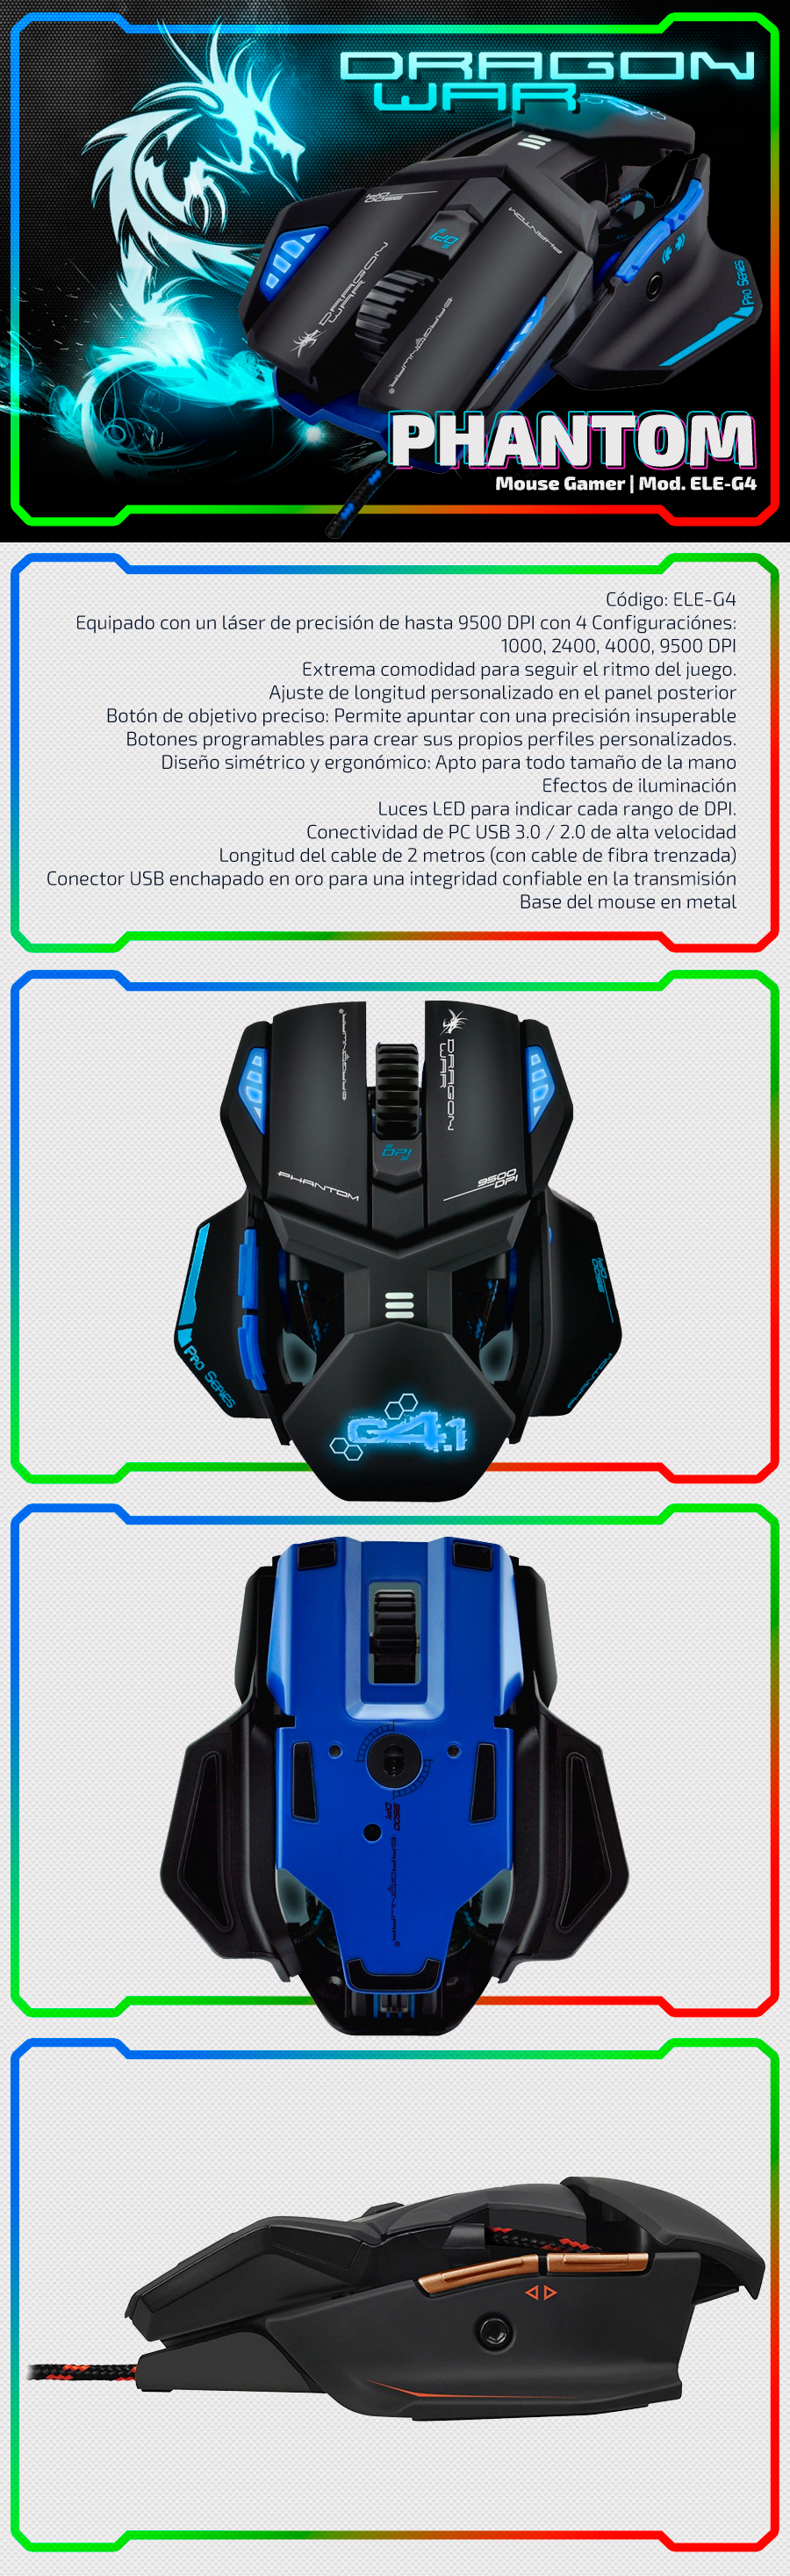 Phantom Laser | Dragon War - Gaming Mouse | ELE-G4